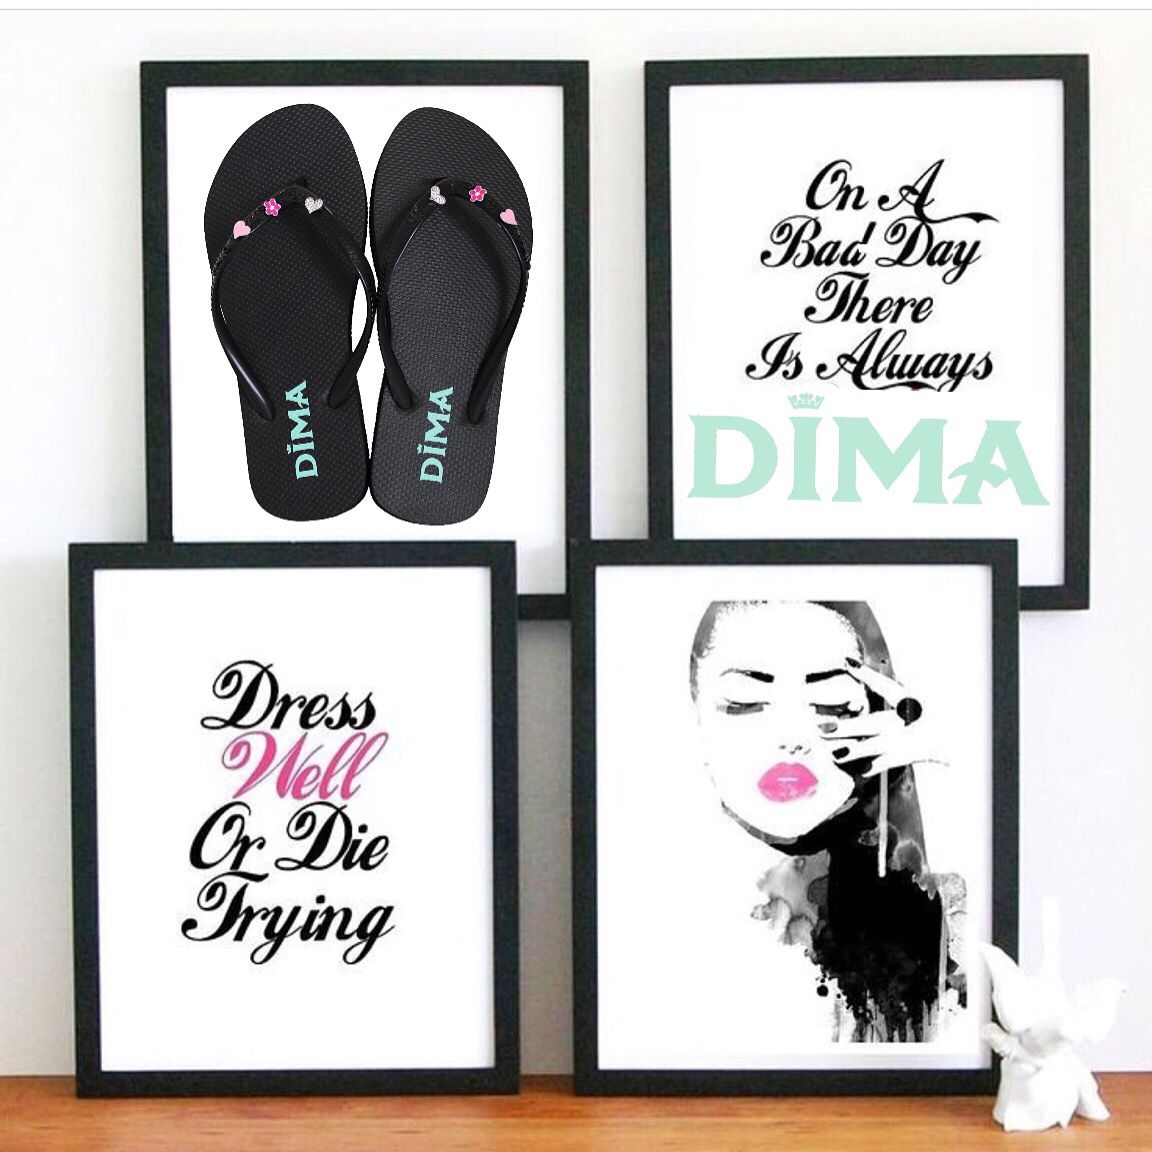 Dress well or die trying  Www.Dimaflipflops.com